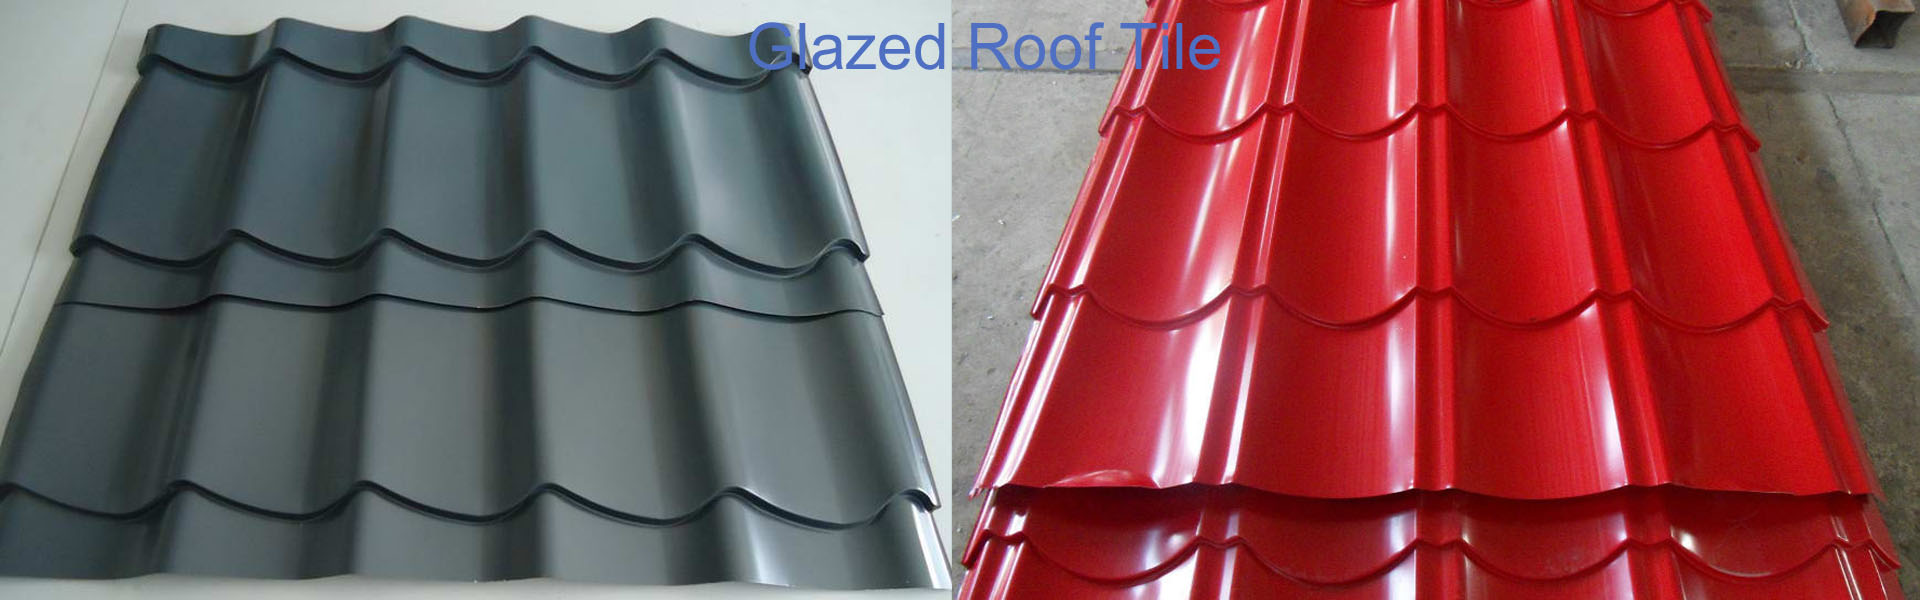 Glazed roof tile